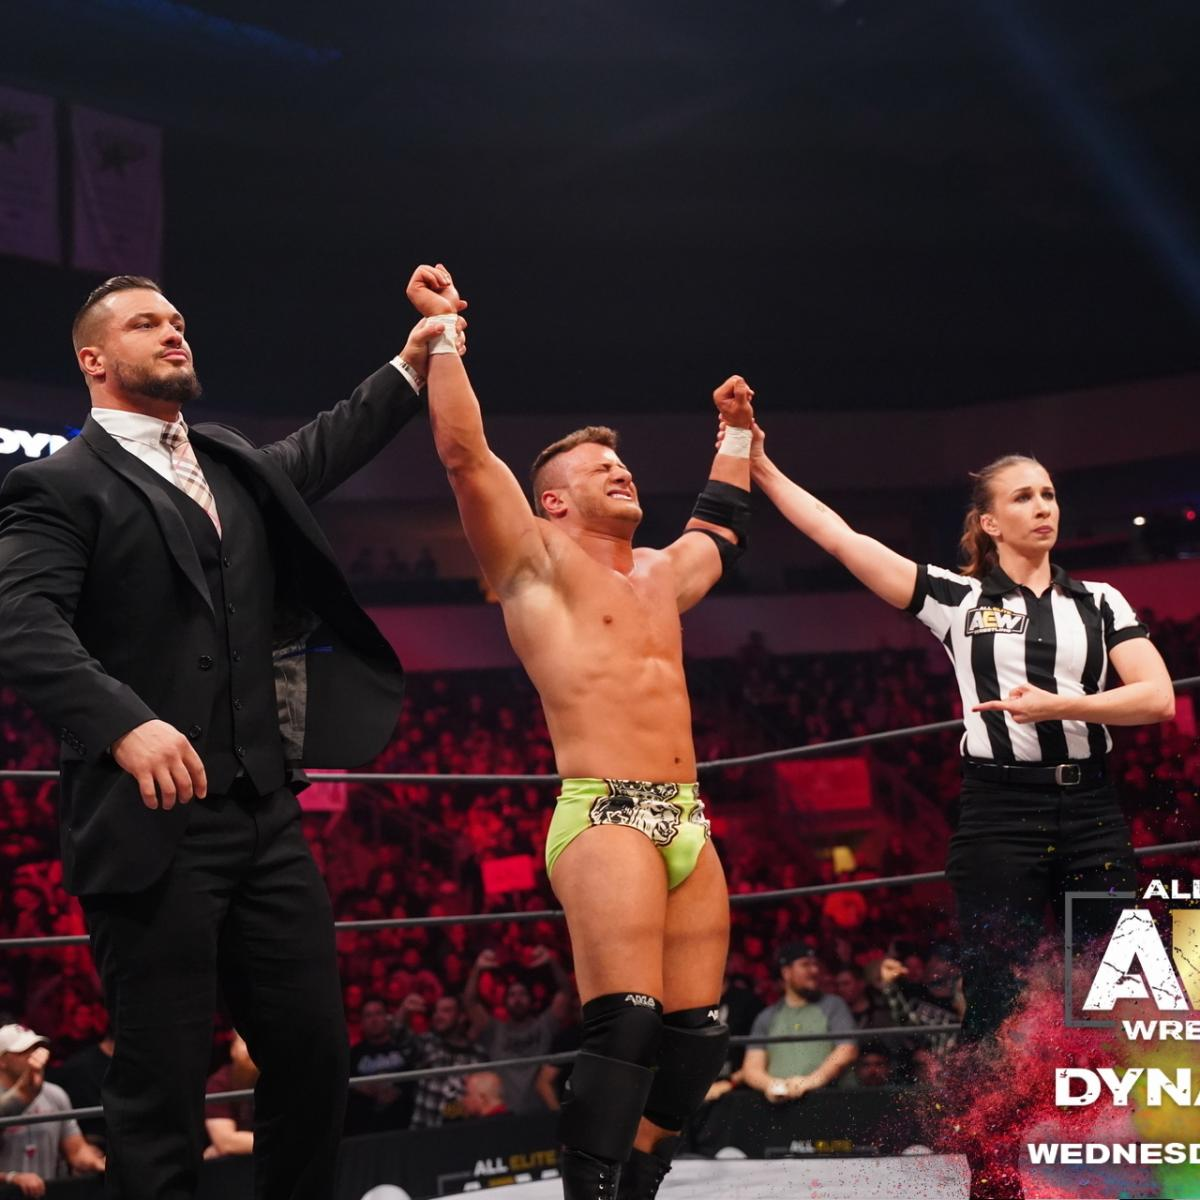 AEW Dynamite Results: Winners, Grades, Reaction and Highlights from February 19